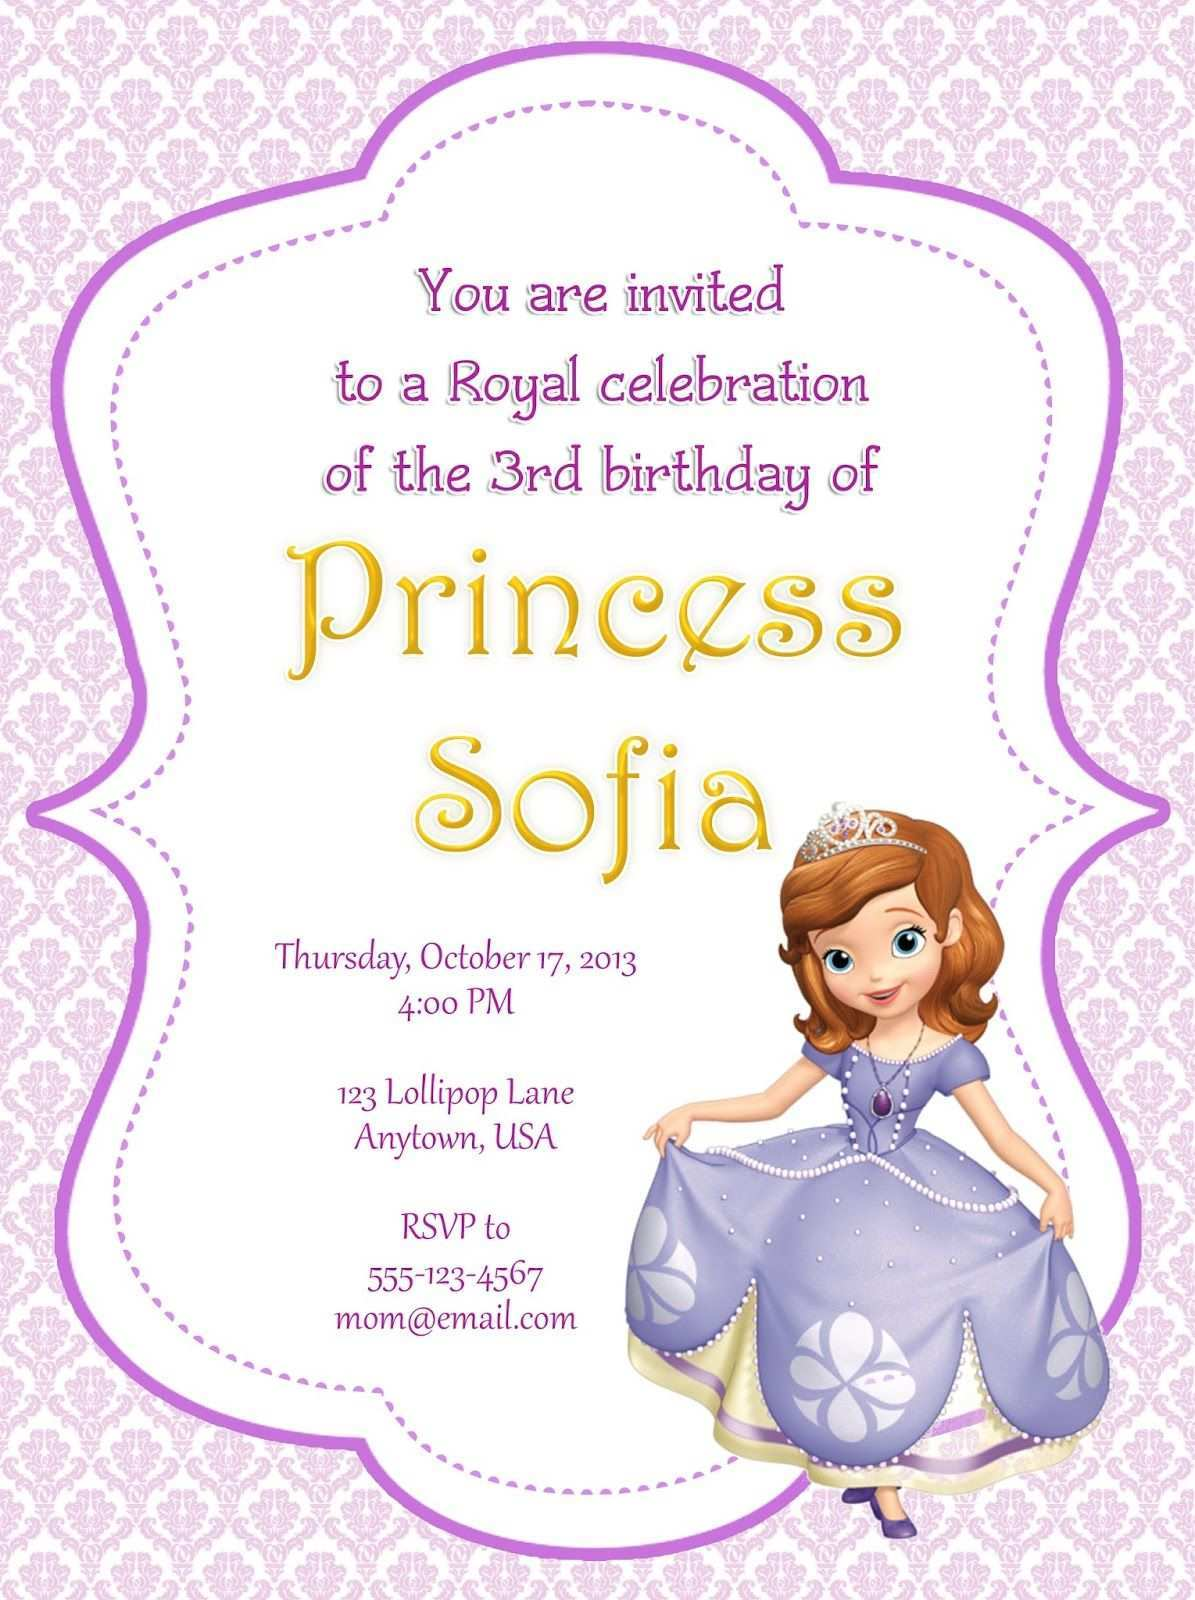 Sofia The First Invitation Template from legaldbol.com